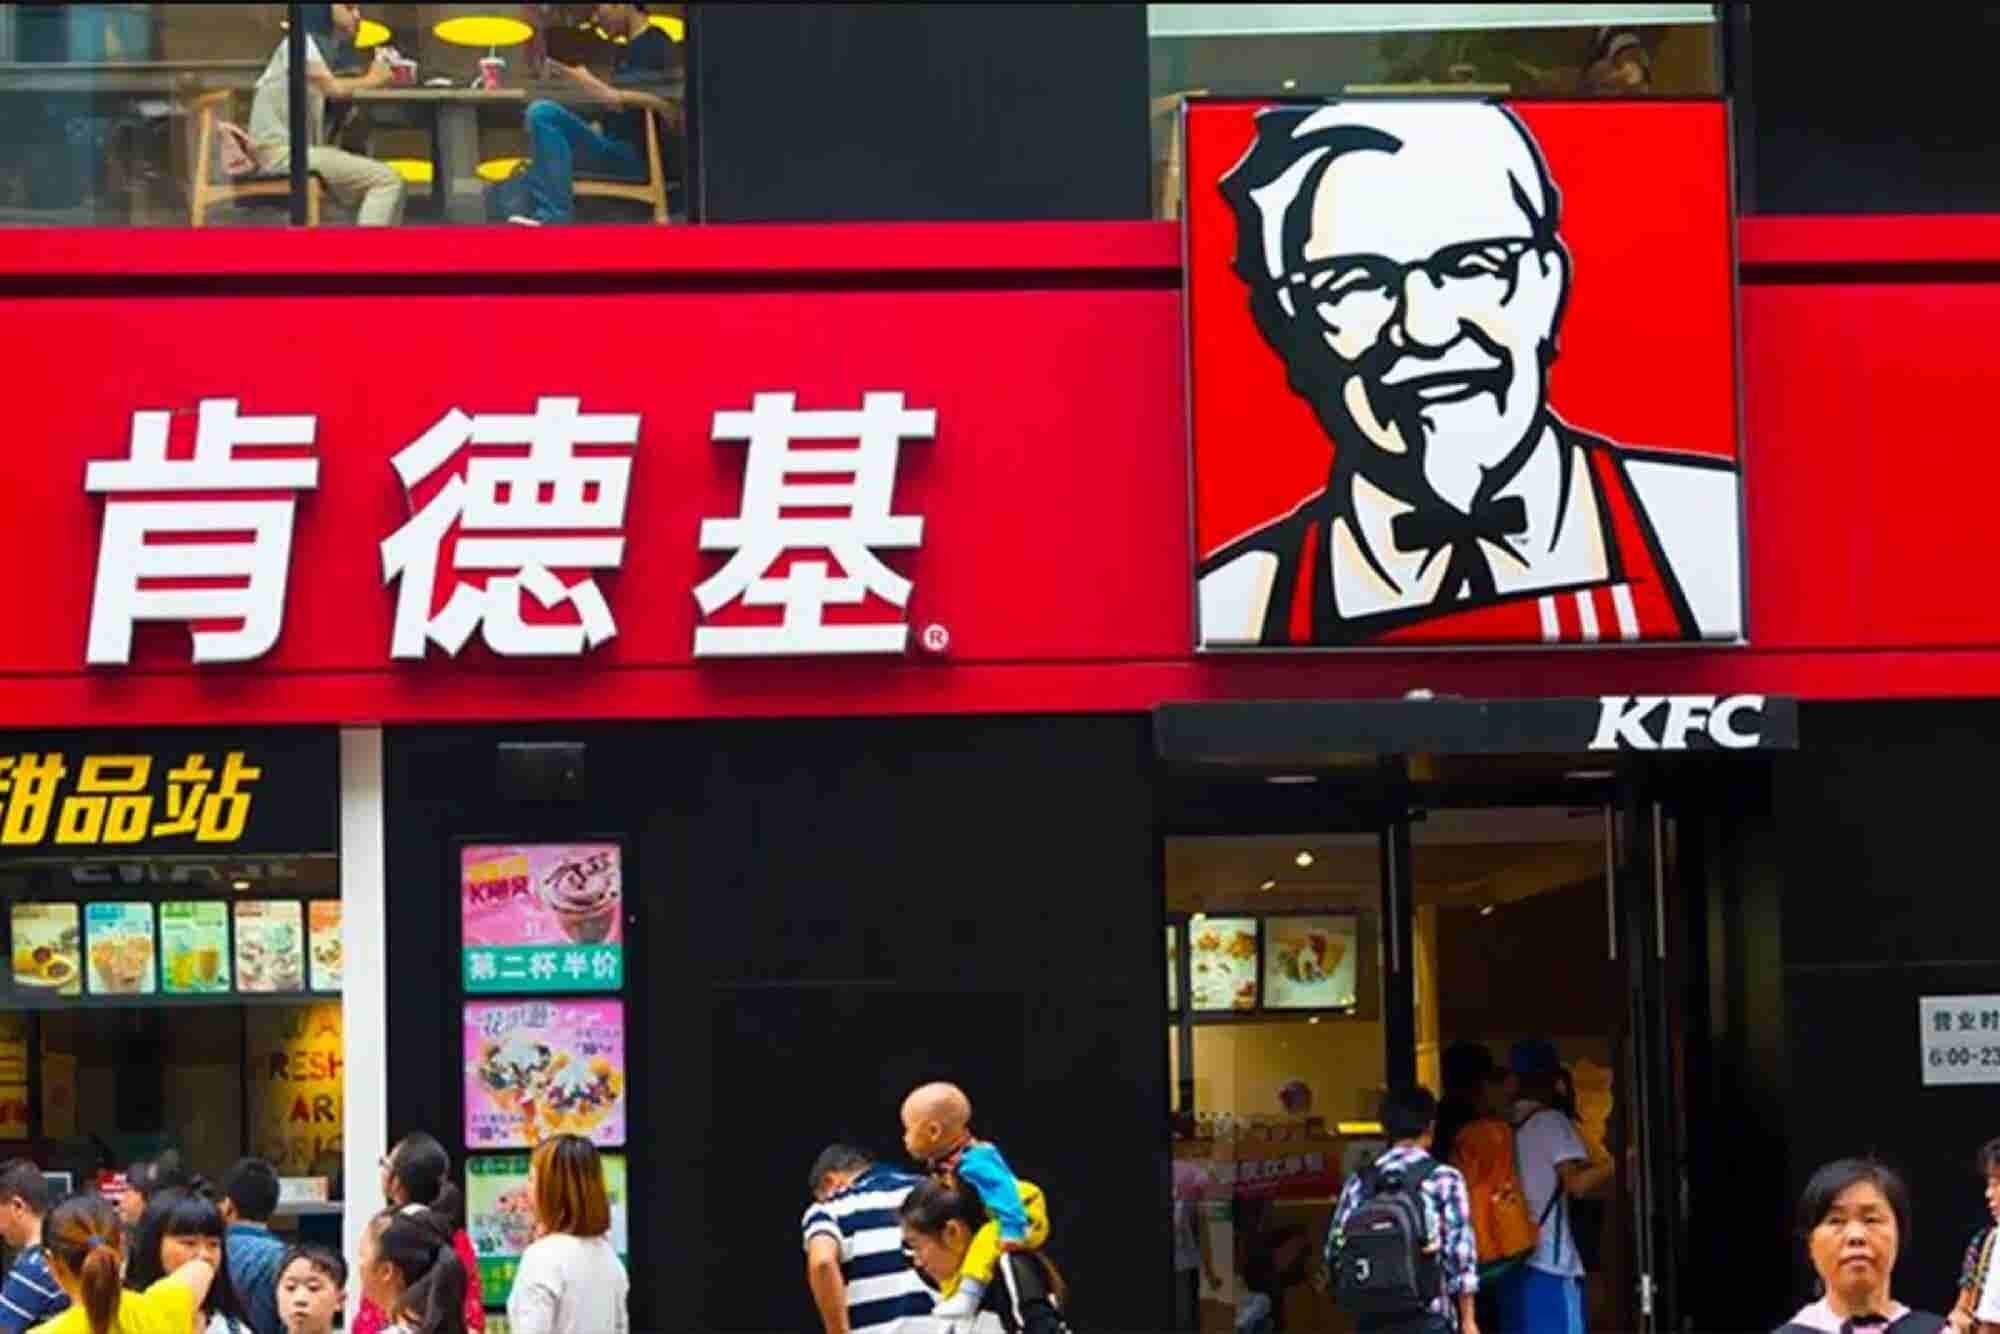 KFC Now Has a Branded Smartphone